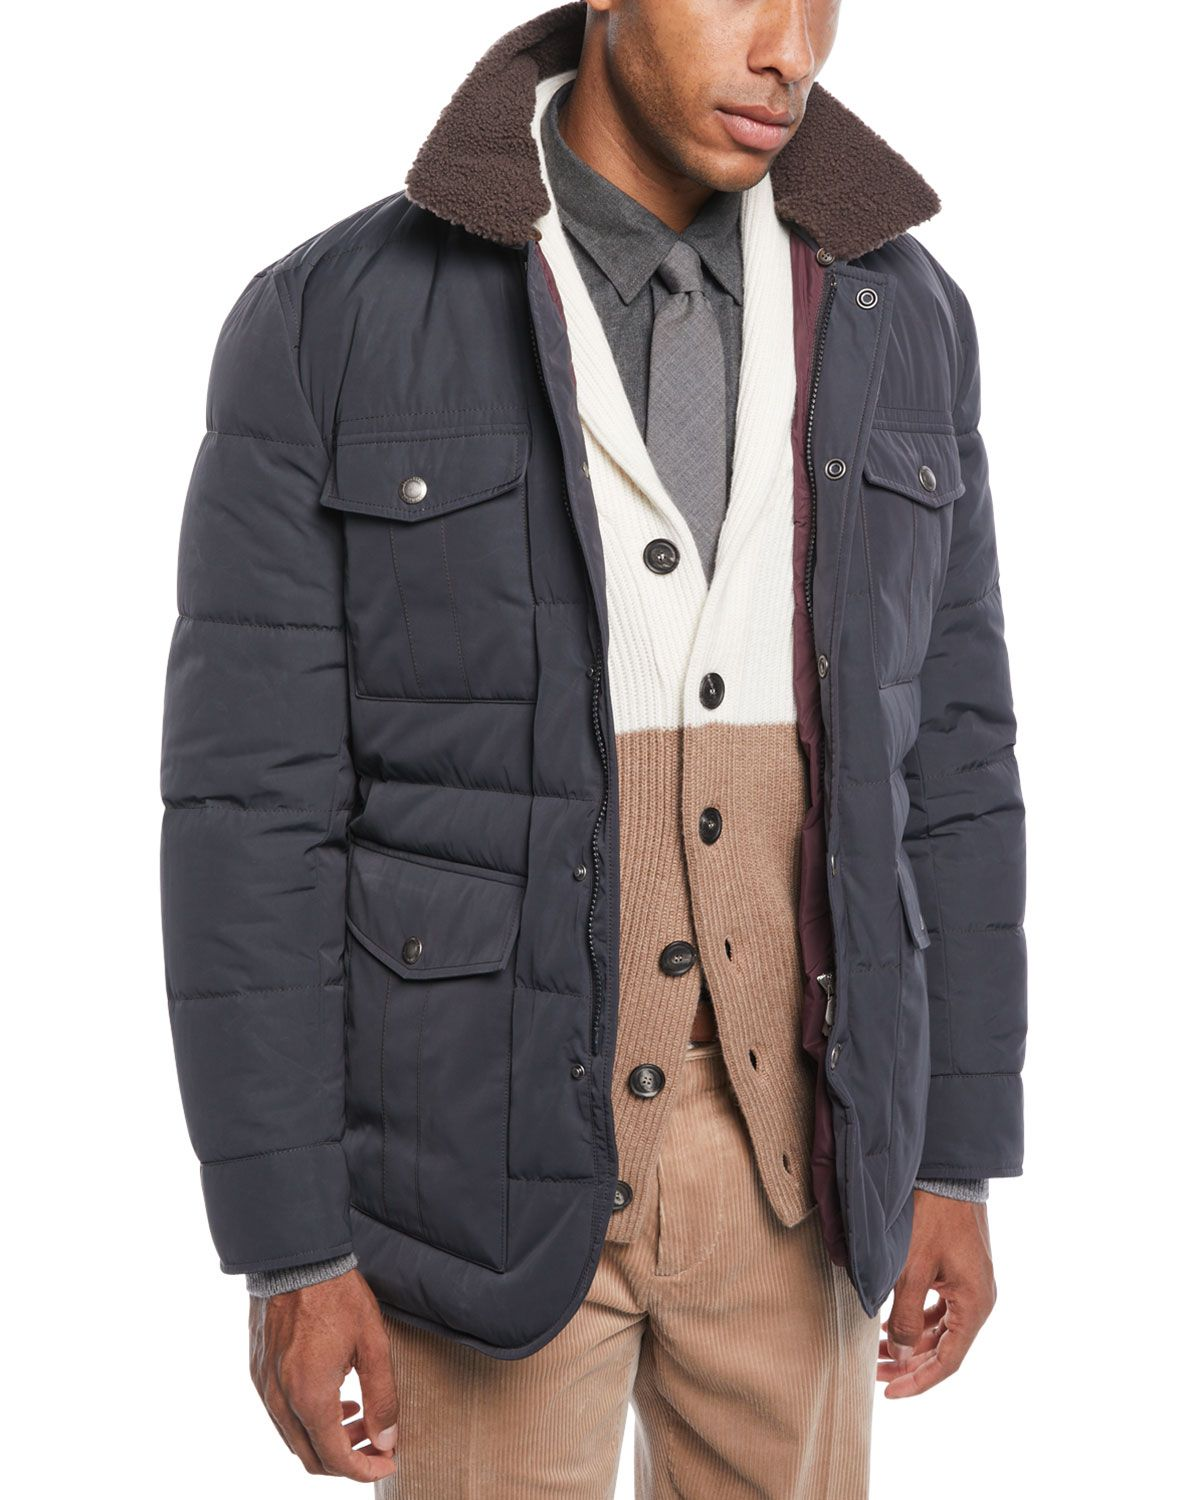 Brunello Cucinelli Men S Padded Technical Puffer Jacket With Shearling Trim Brunellocucinelli Cloth Brunello Cucinelli Men Jackets Man Pad